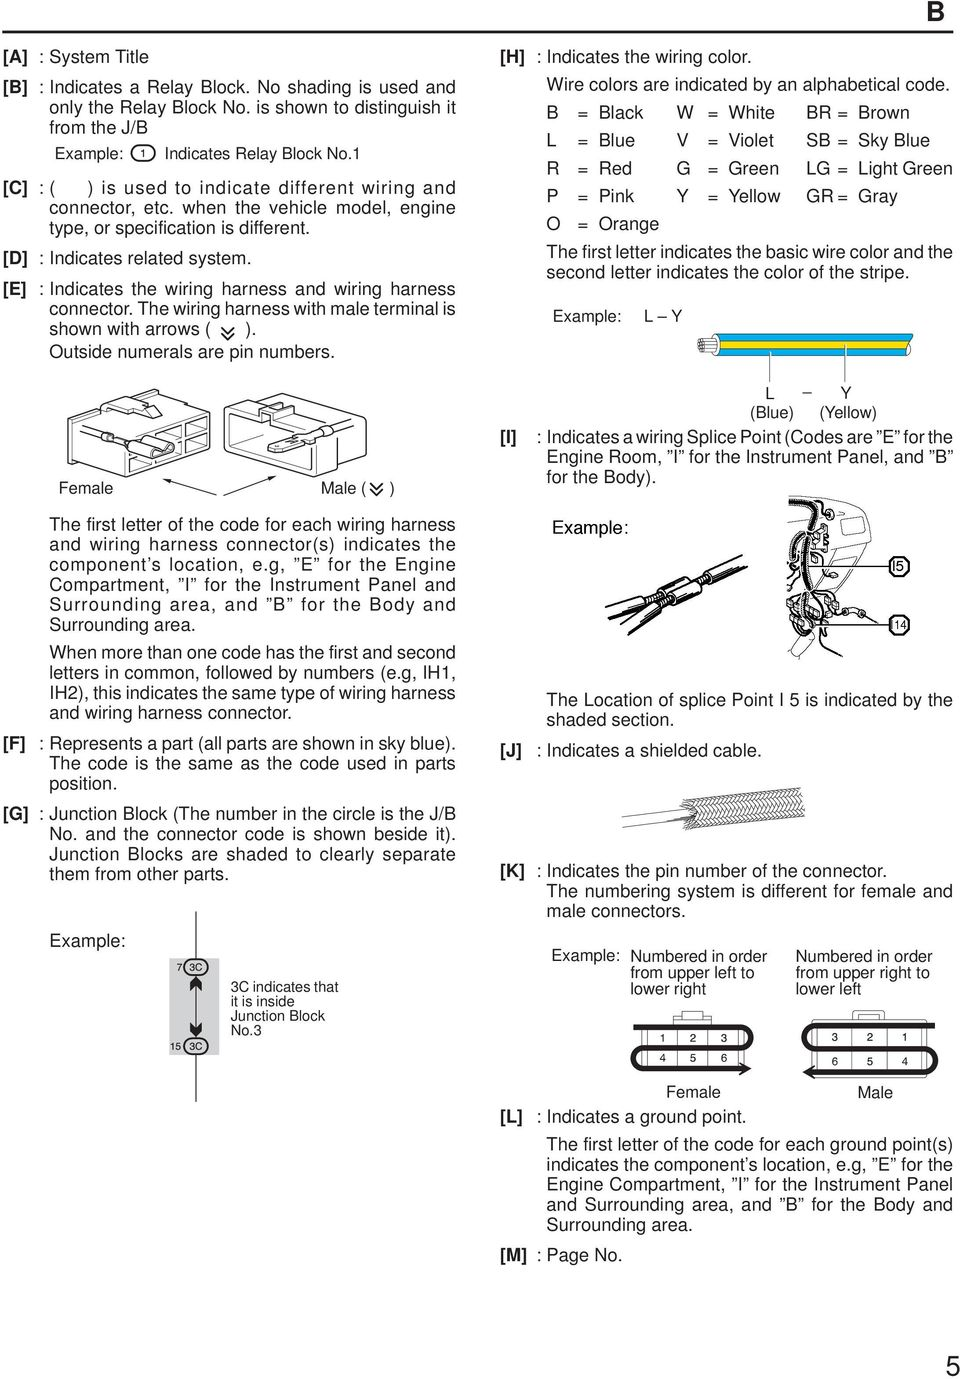 Hilux Electrical Wiring Diagram Pub No Dr114w Pdf 4 Wire Harness Color Code E Indicates The And Connector